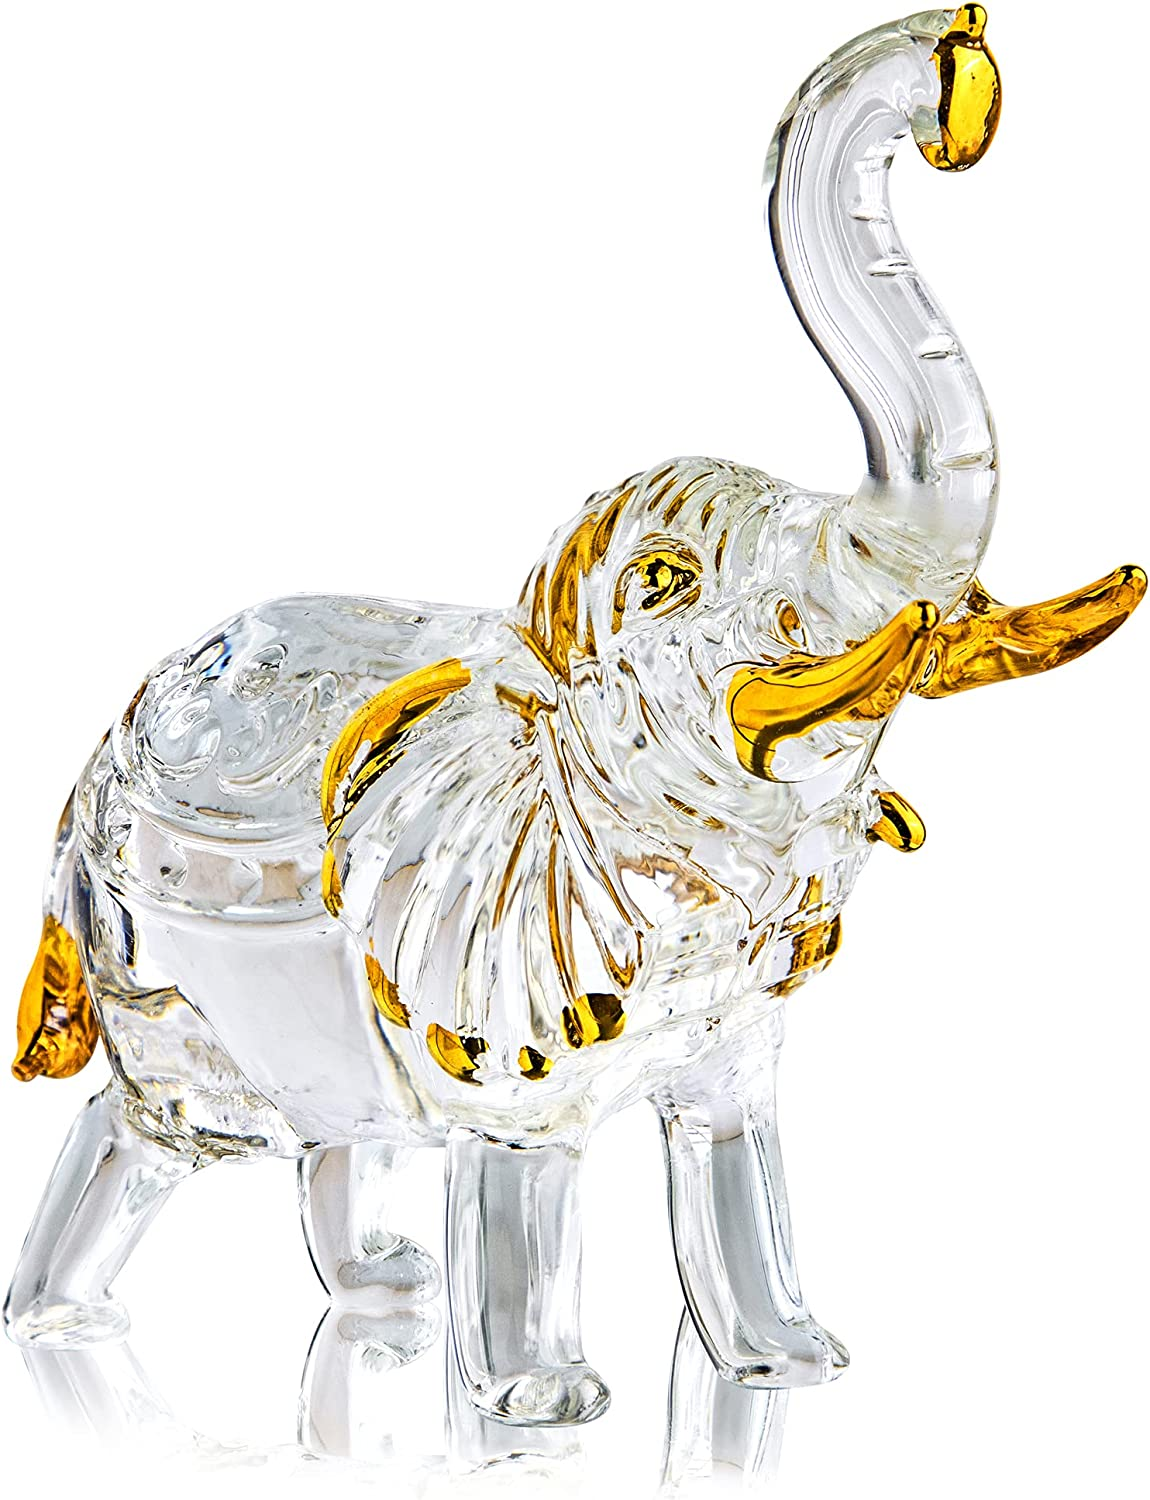 H&D HYALINE & DORA Handmade Crystal Thai Elephant Statue with Trunk Raised Figurine Home Decor Table Centerpiece Sparkling Glass Art Animals Collectible Gift